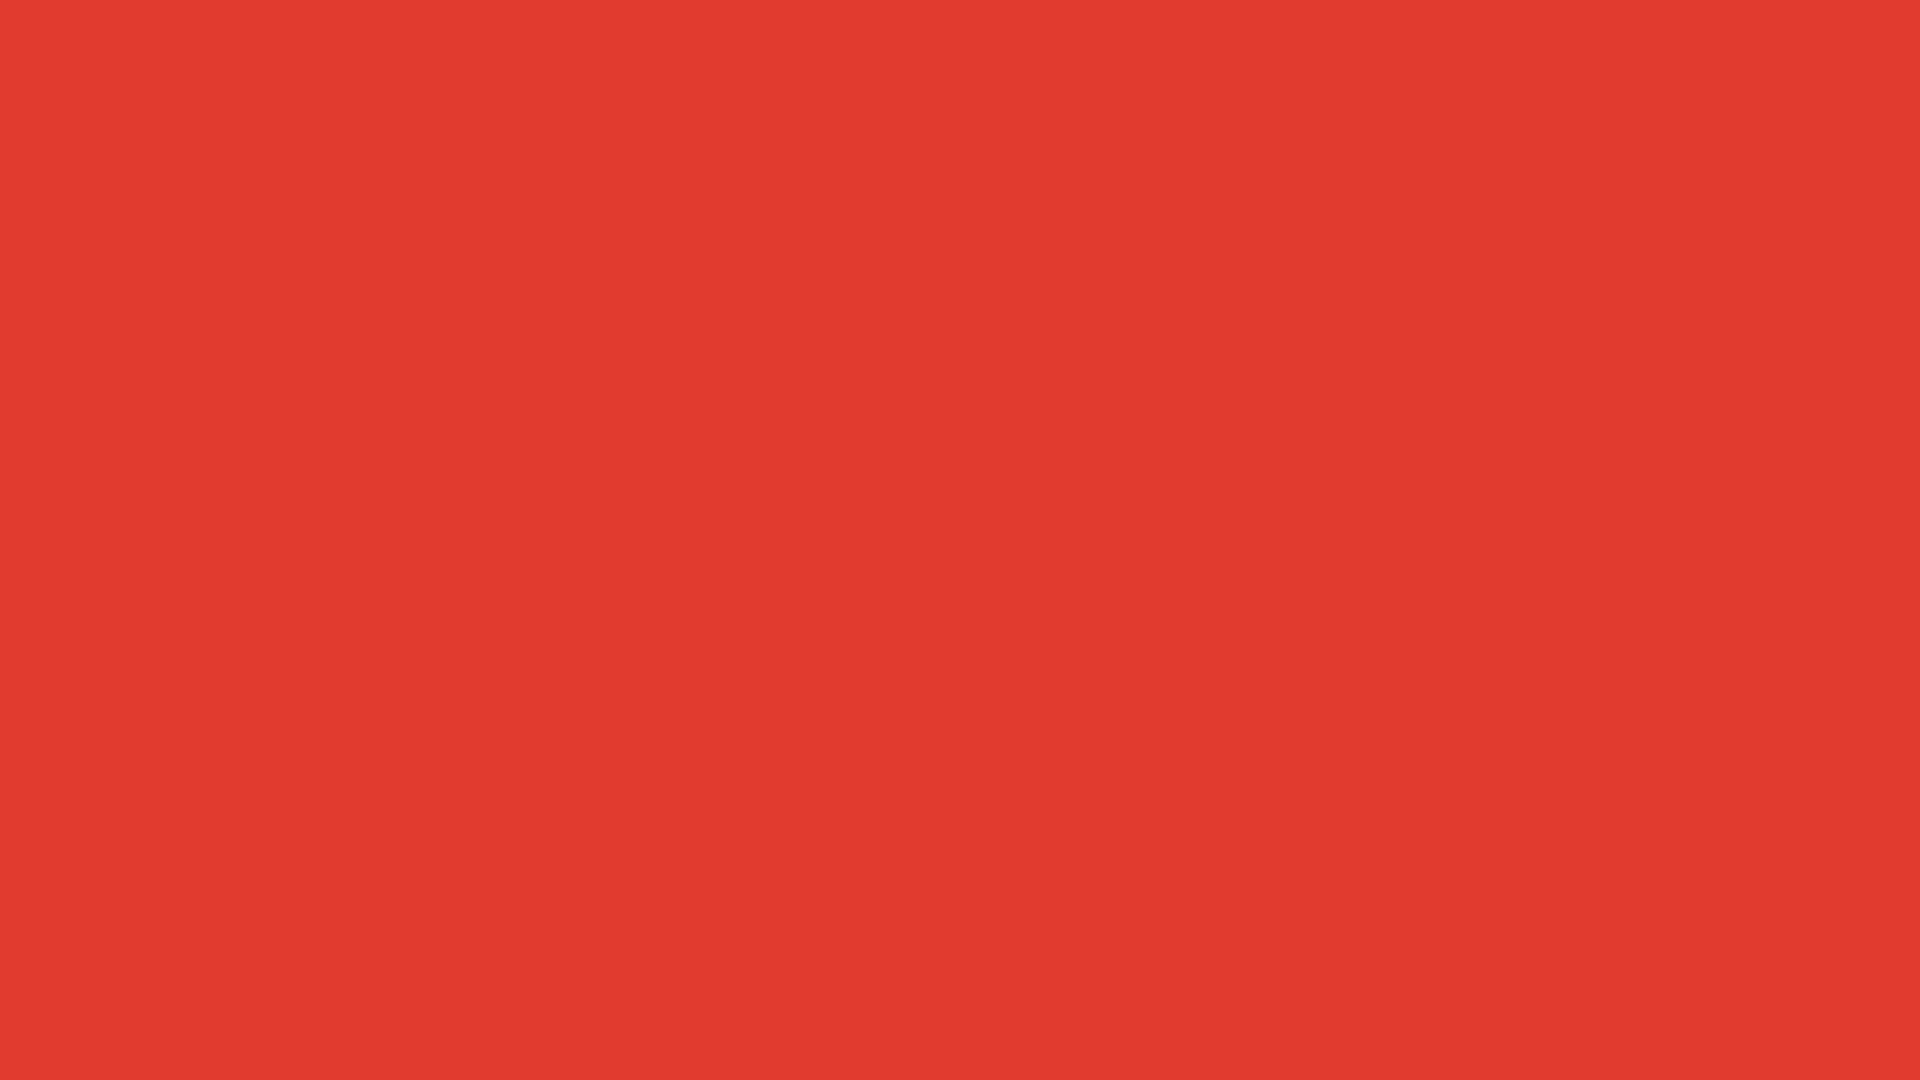 1920x1080 CG Red Solid Color Background